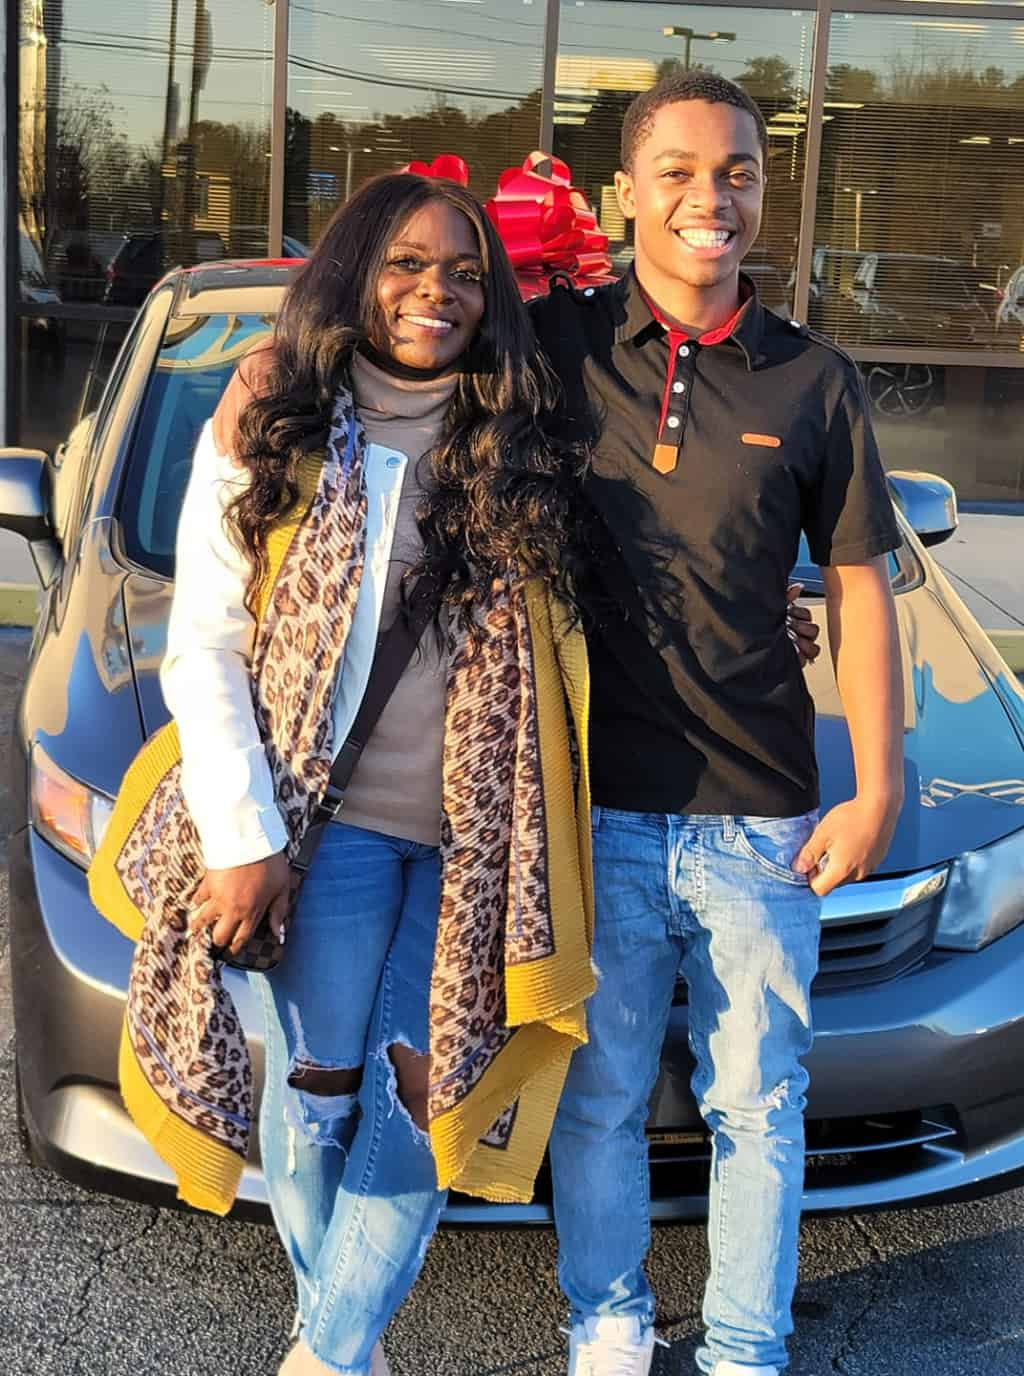 Kindhearted Woman Surprises a Deserving Student with a New Car